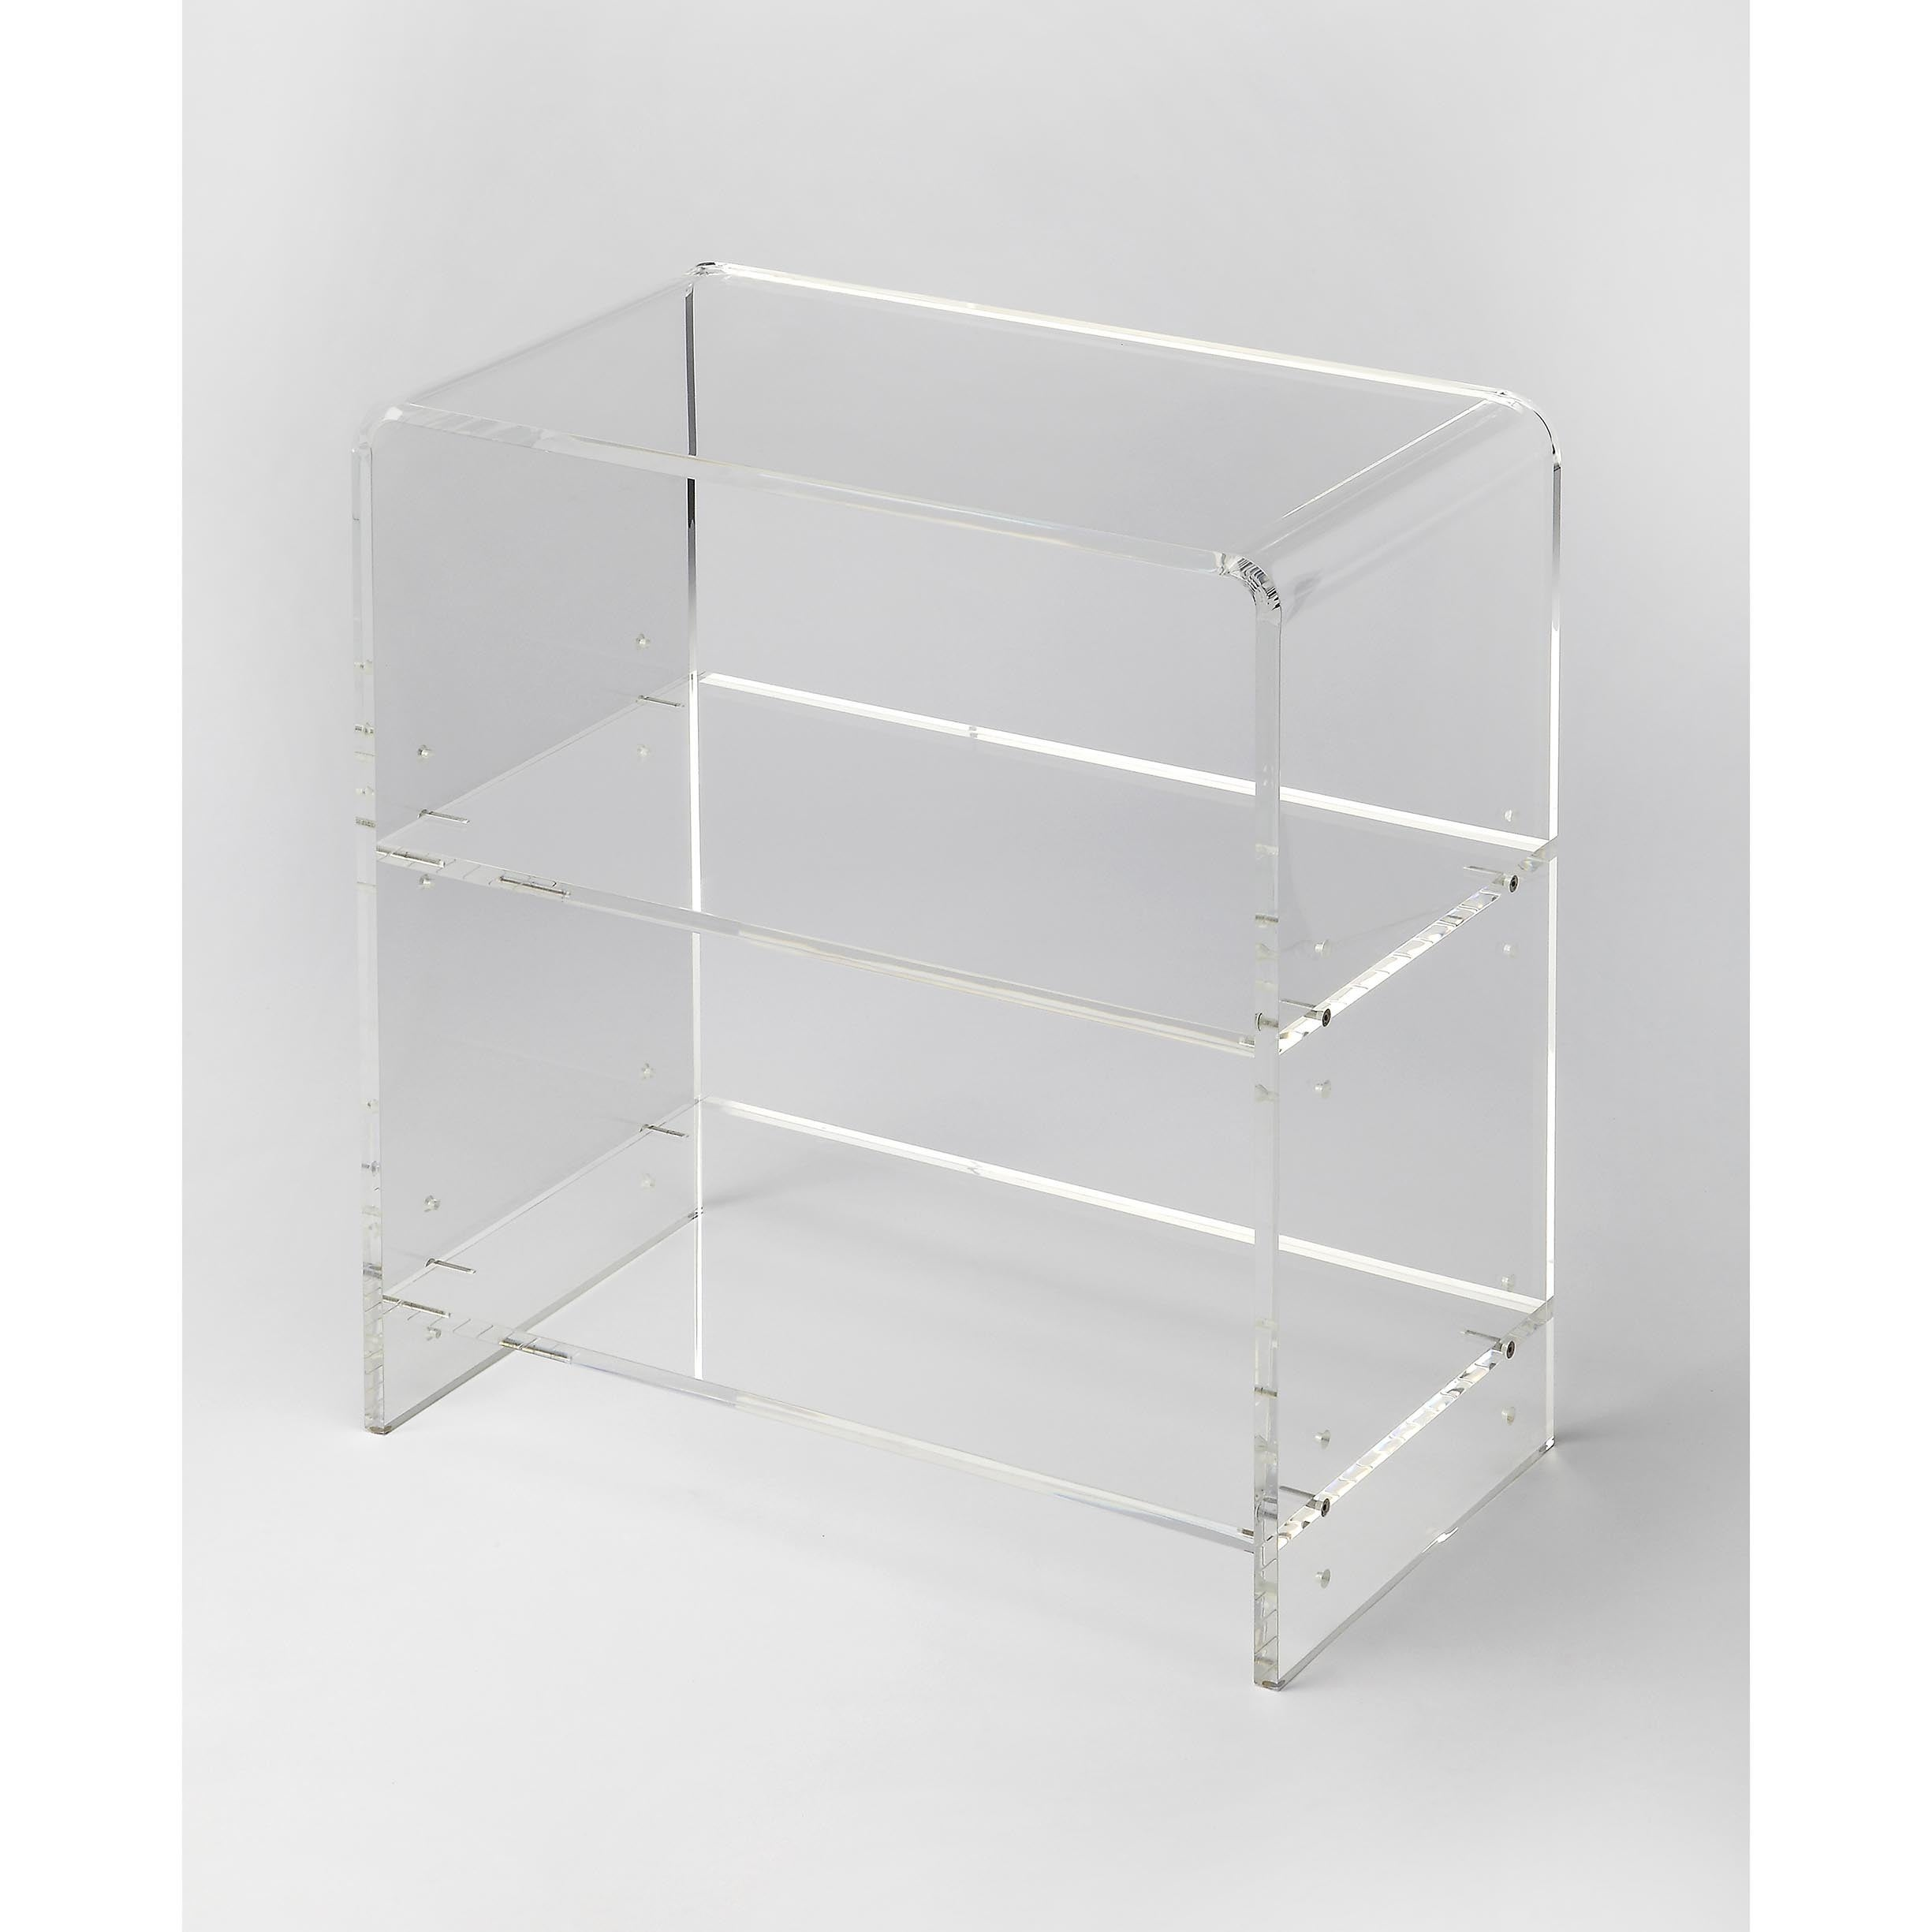 adler jonathan jacques pin acrylic etagere bookcase modern home ideas room